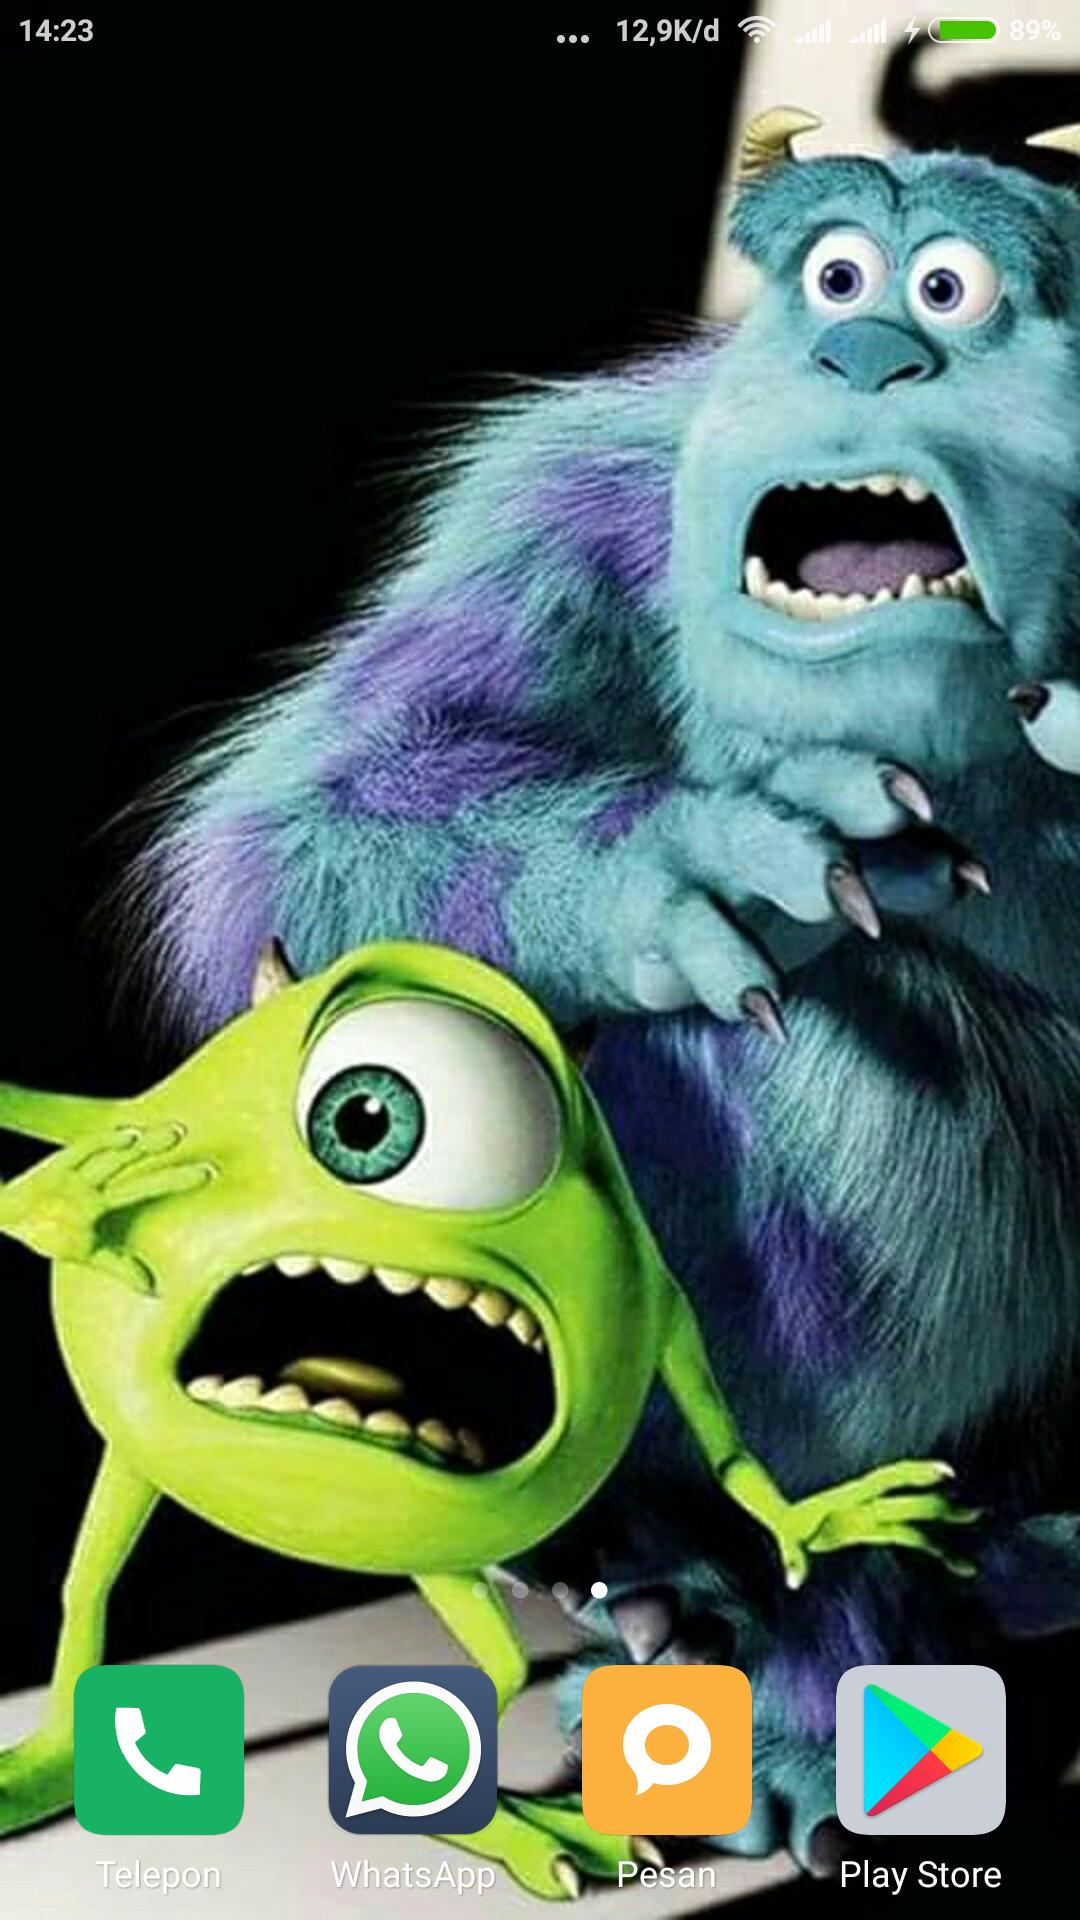 wallpapers monster inc hd for android apk download wallpapers monster inc hd for android